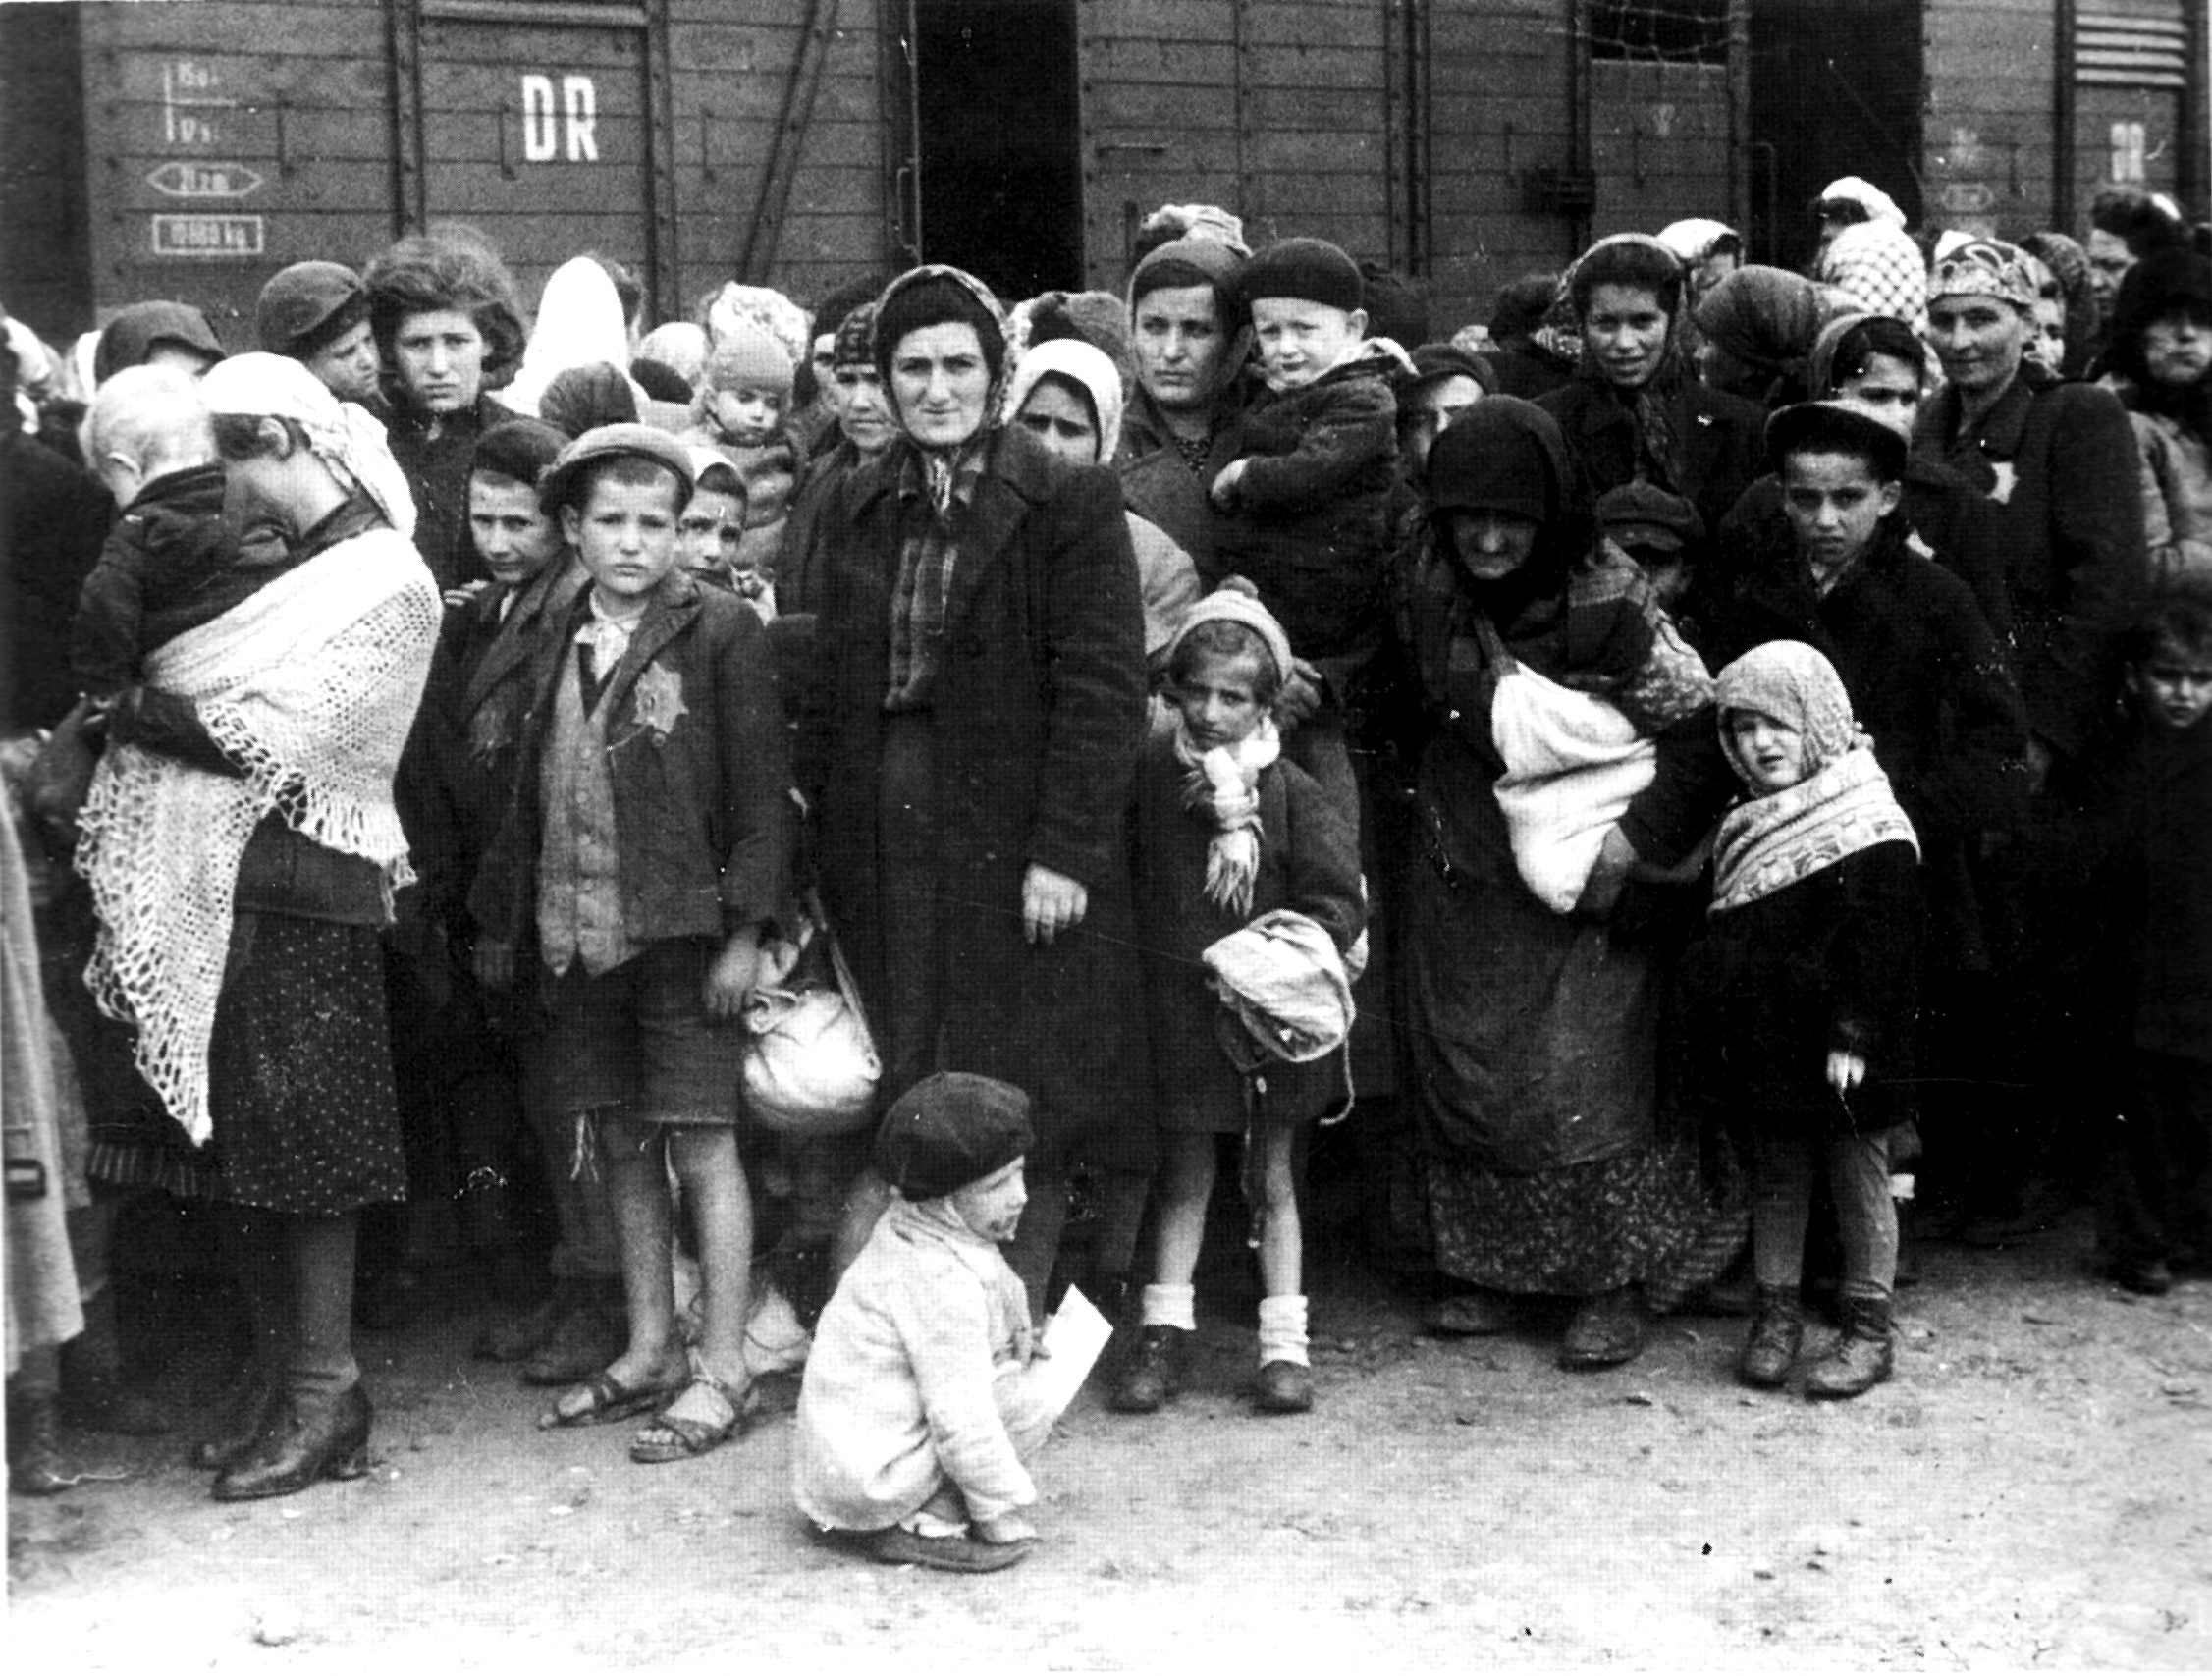 Jews waiting for extermination by the Nazi regime